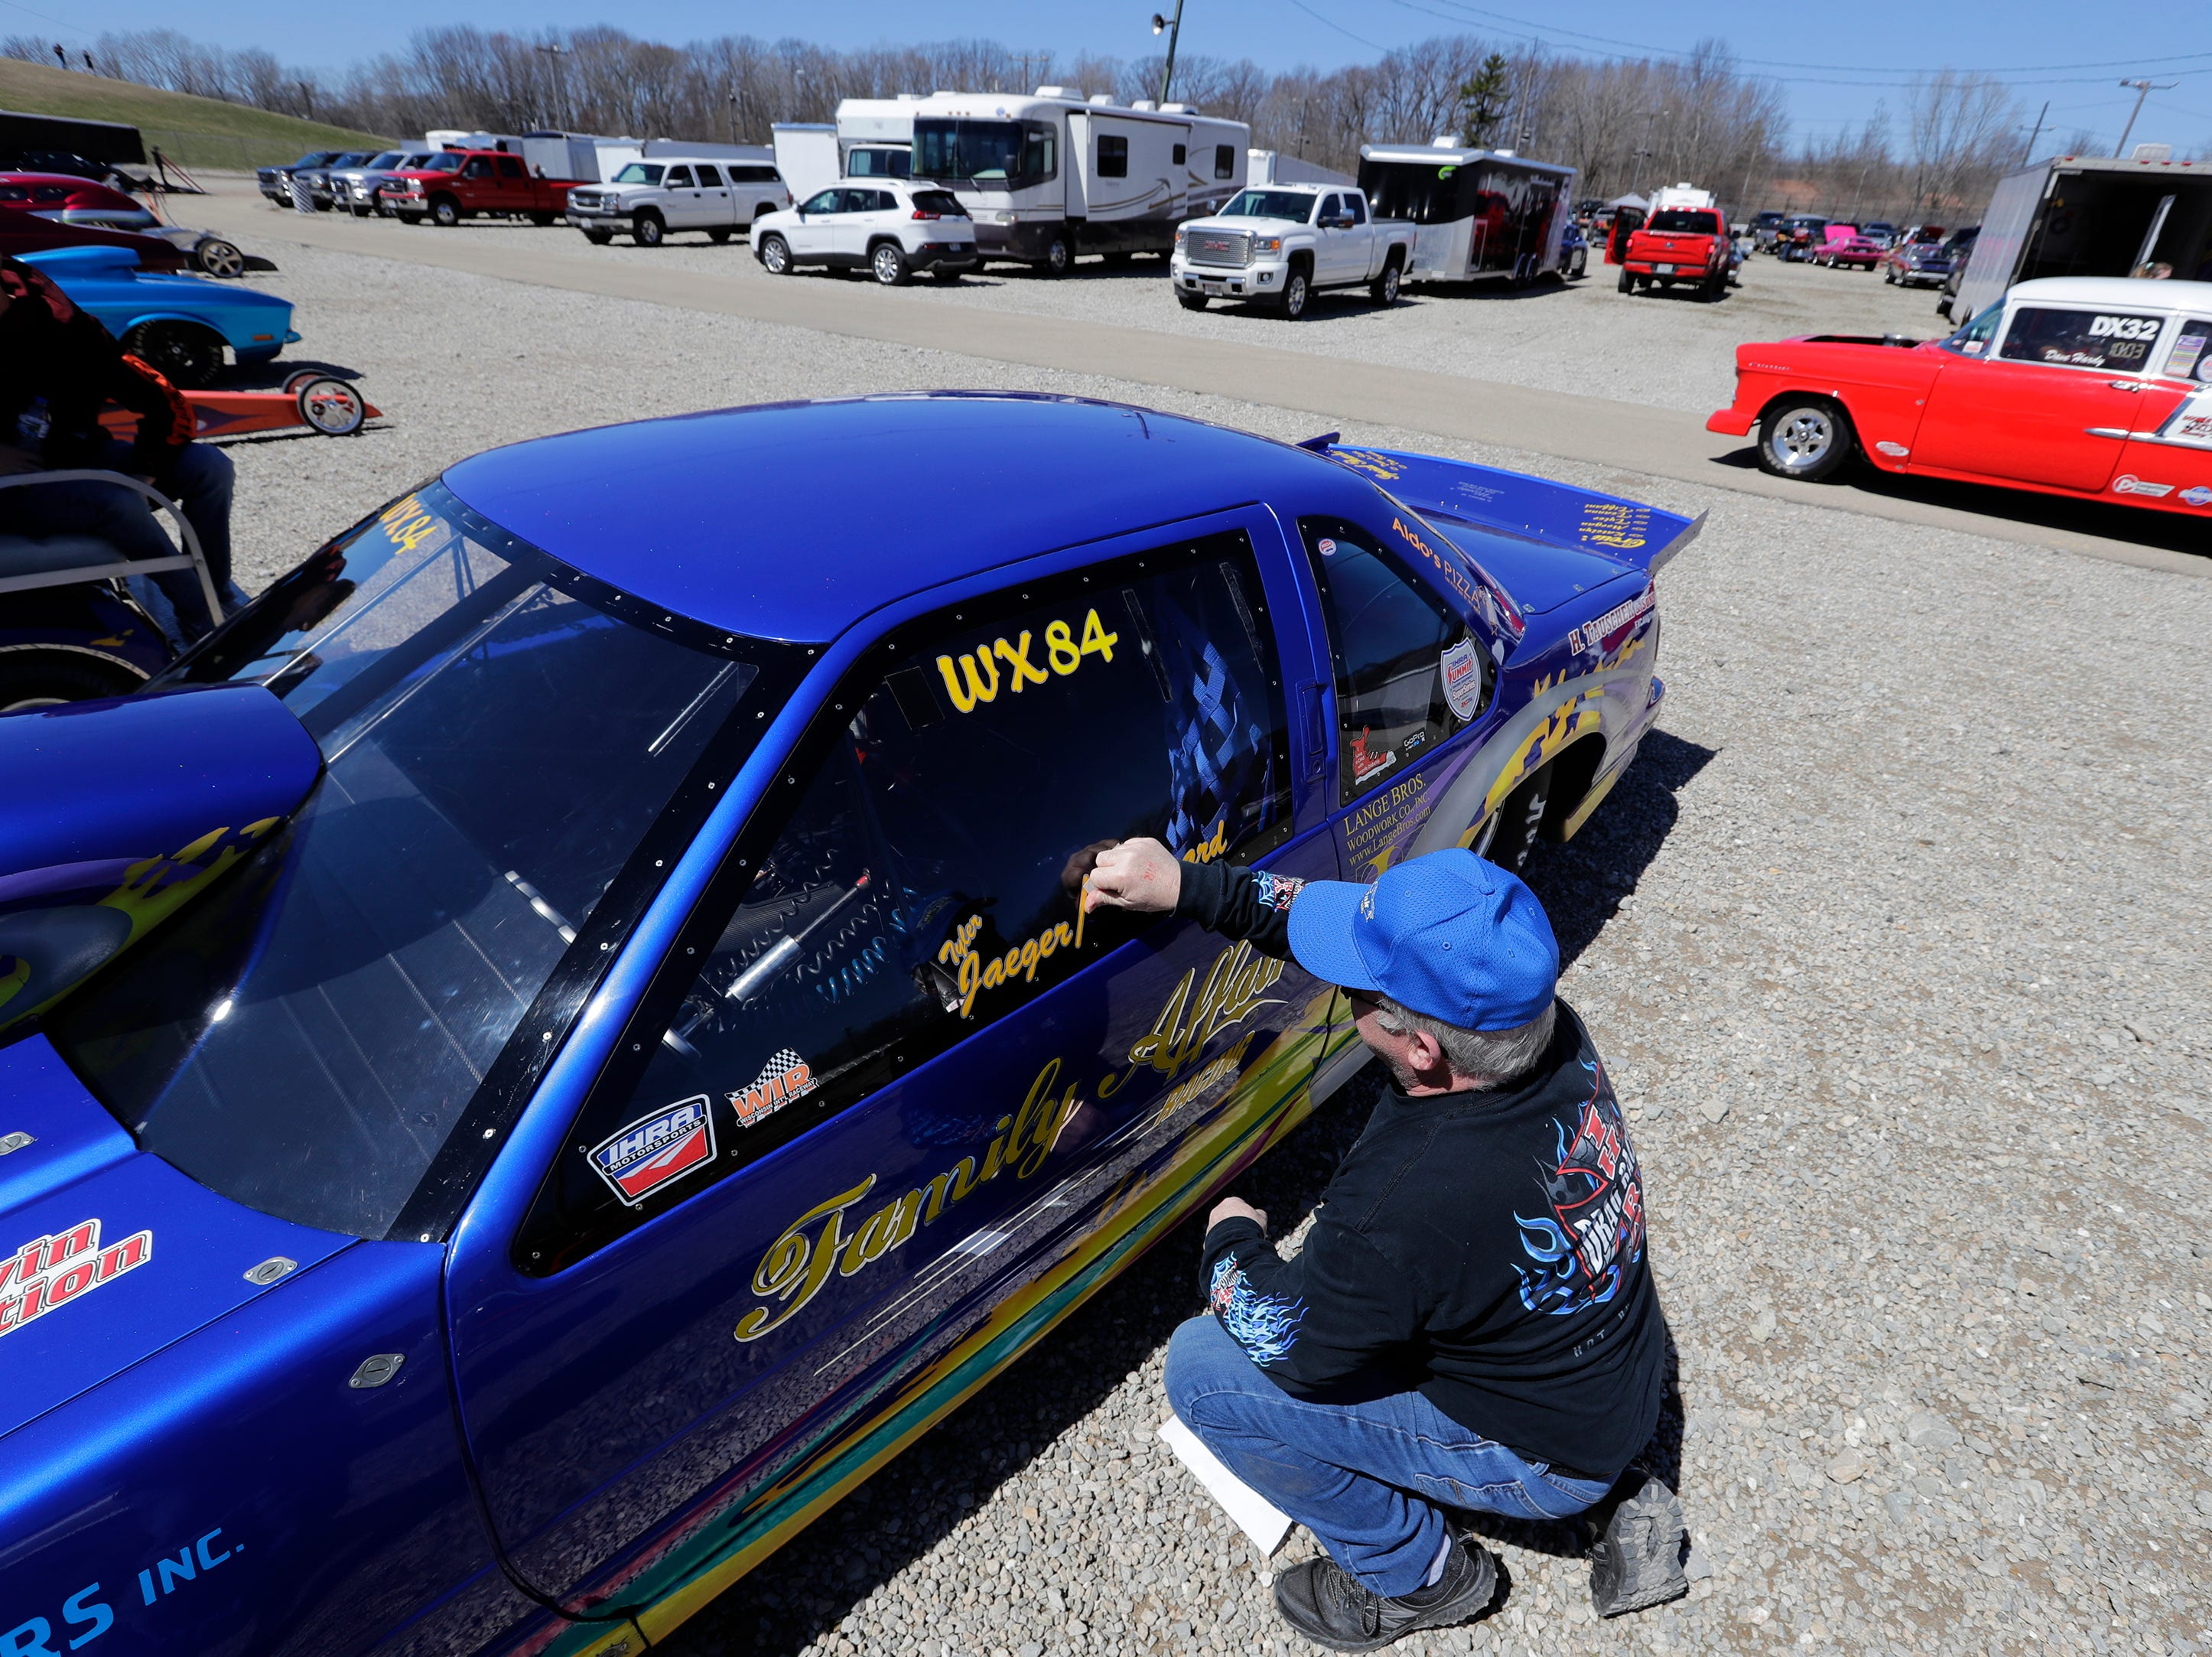 Myron Mertens of Green Bay puts decals on his dragster during the Wisconsin International Raceway Strip Test & Tune event Saturday, April 20, 2019, in Kaukauna, Wis. Drivers spent the day getting safety inspections, tune ups and test runs on the track for the upcoming season.